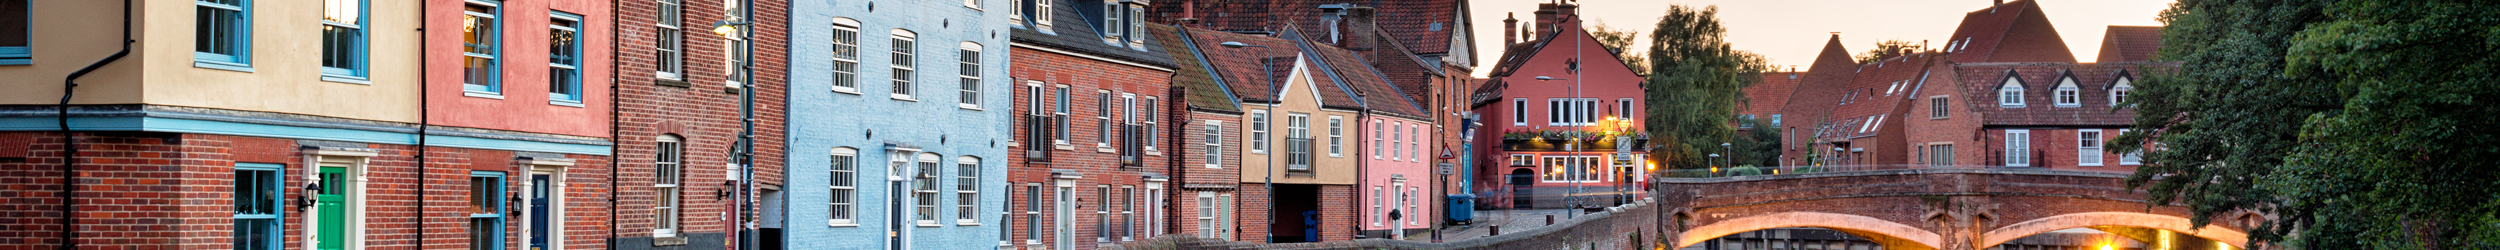 The Ber Street Hub business directory header image for Property and Estate Agents in Norwich